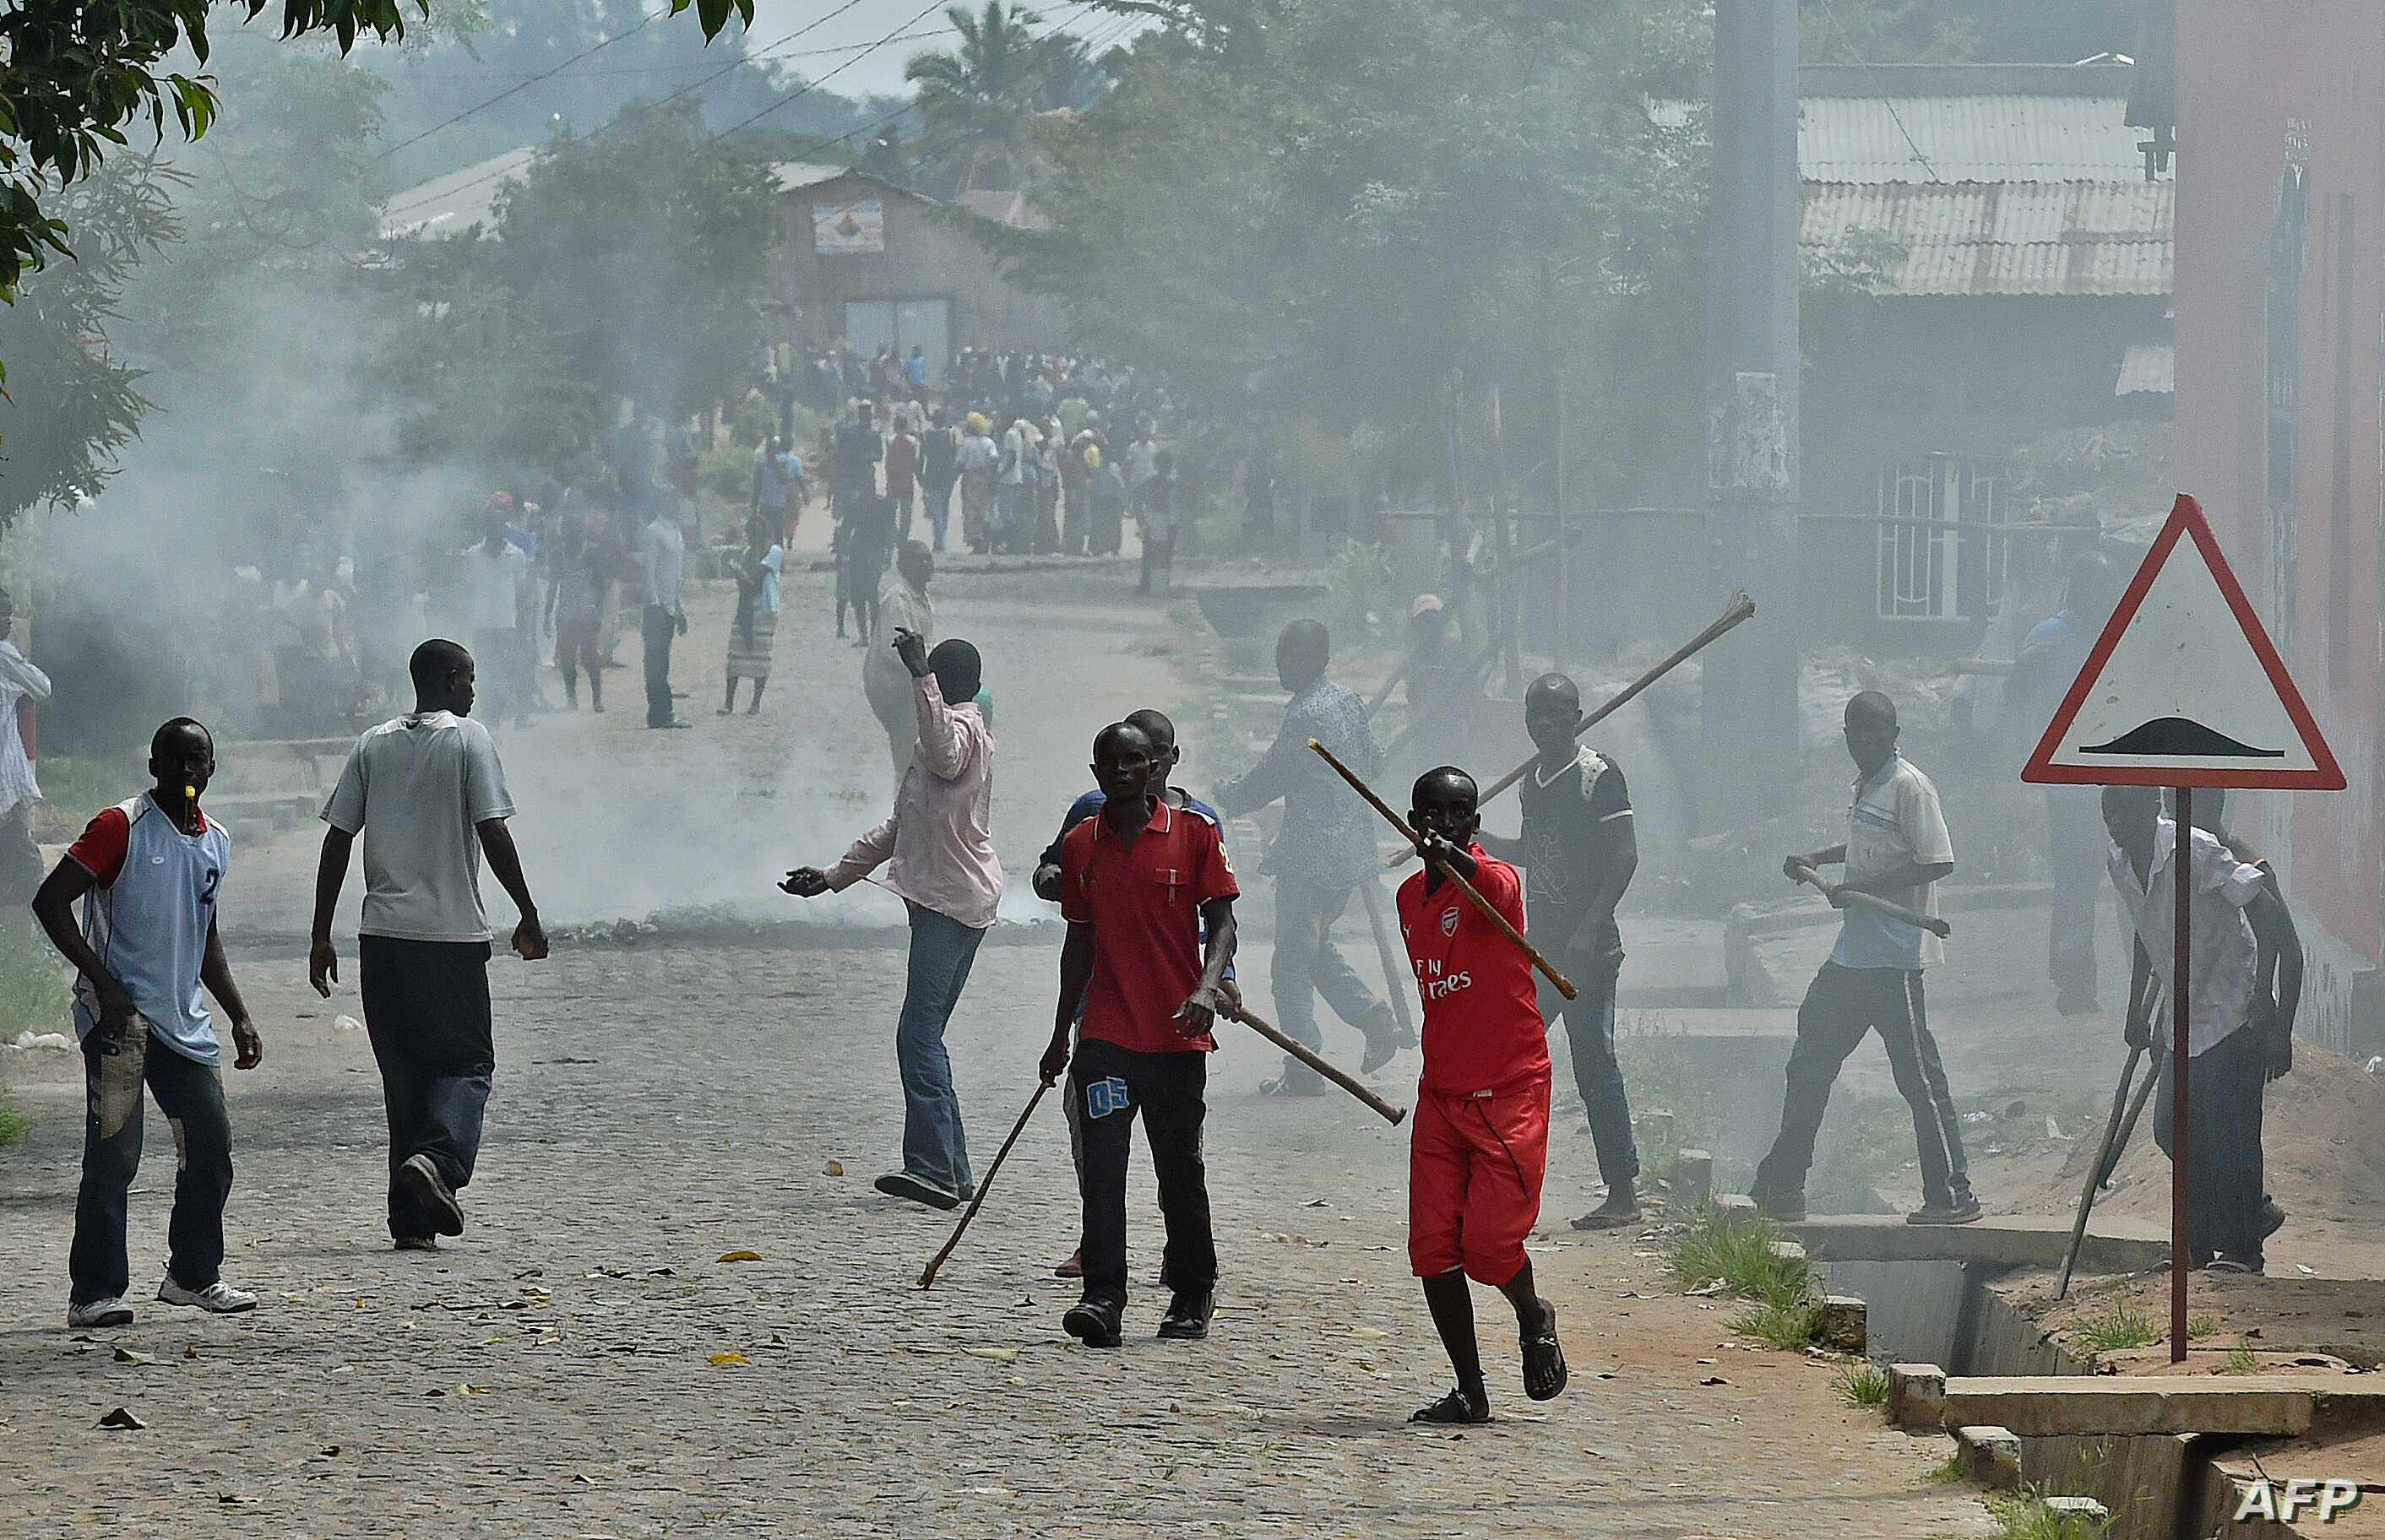 FILE - Members of the Imbonerakure, armed with sticks, chase protesters opposed to the Burundian president's third term in the Kinama neighborhood of Bujumbura, May 25, 2015.